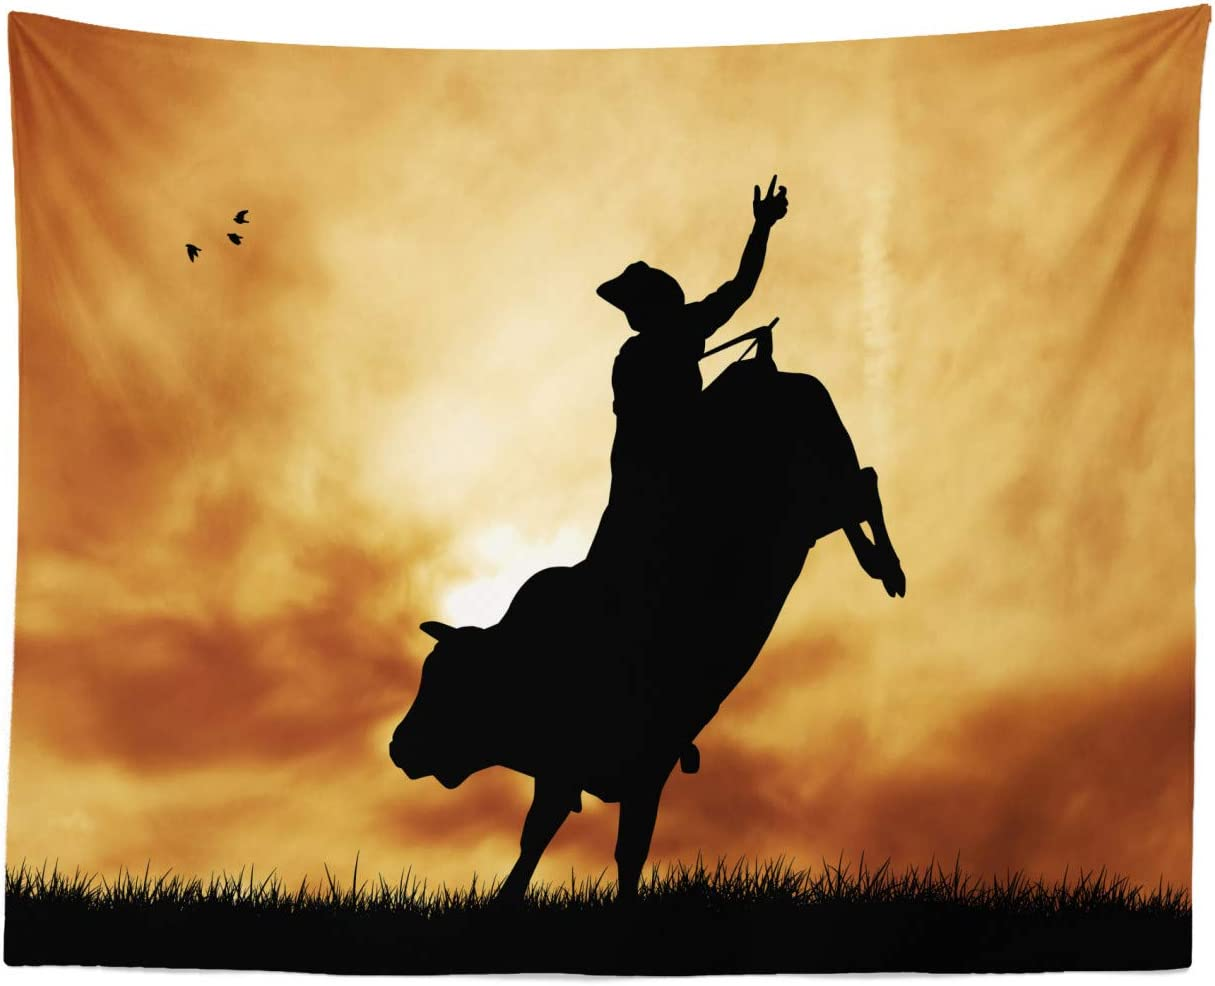 Lunarable Western Tapestry, Bull Rider Silhouette at Sunset Dramatic Sky Rural Countryside Landscape Rodeo, Fabric Wall Hanging Decor for Bedroom Living Room Dorm, 28